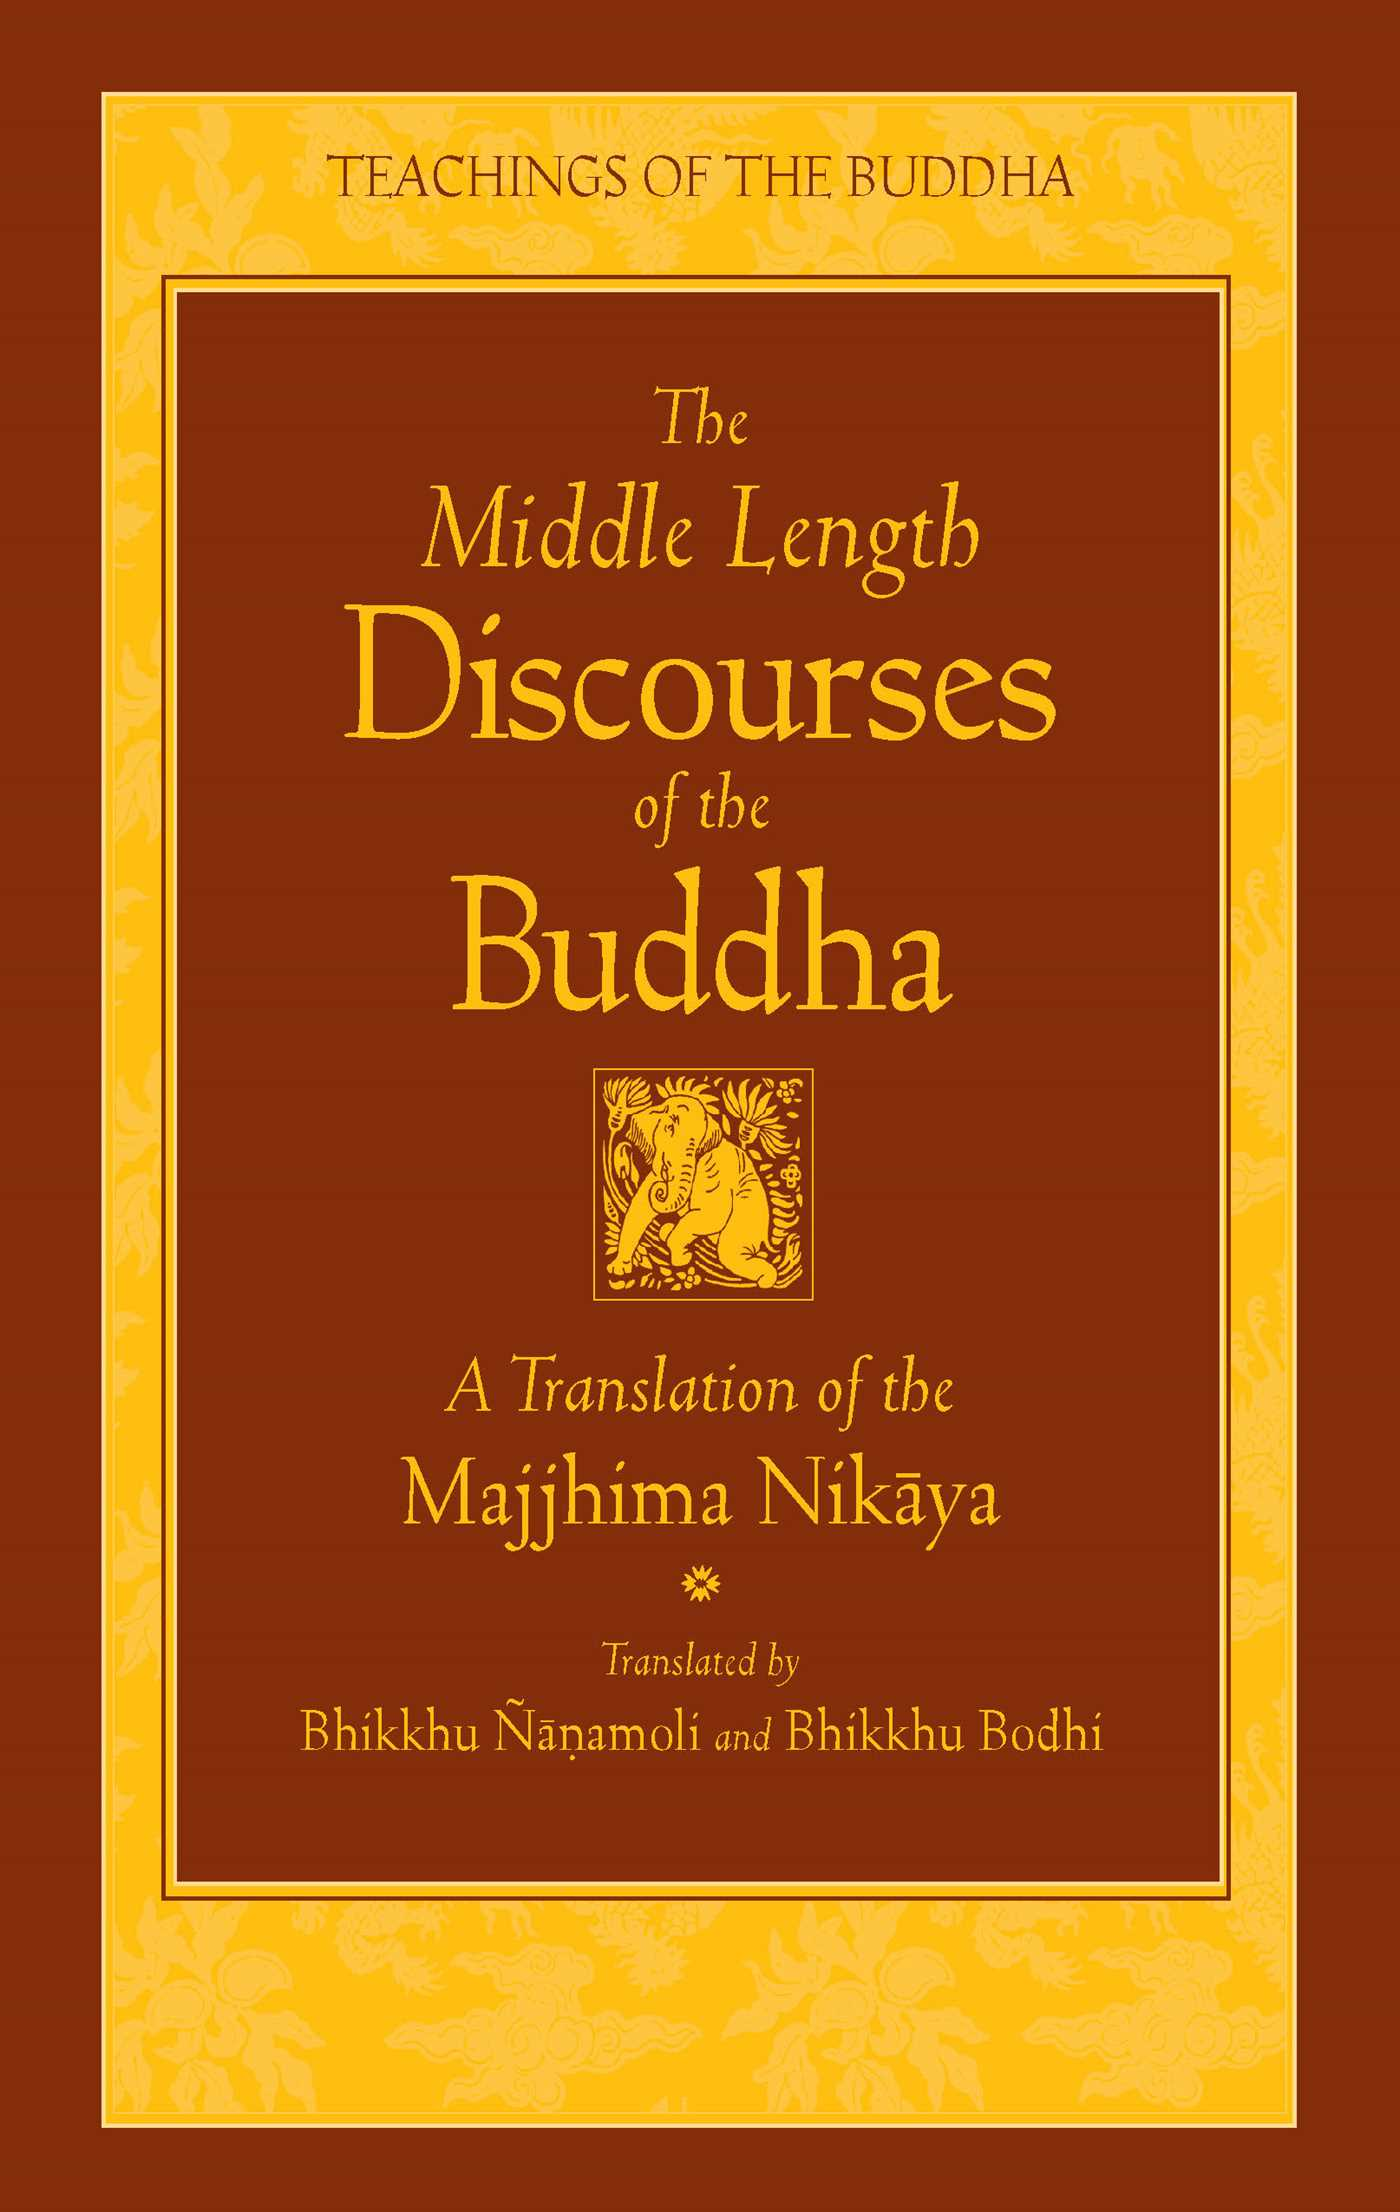 The middle length discourses of the buddha 9780861710720 hr